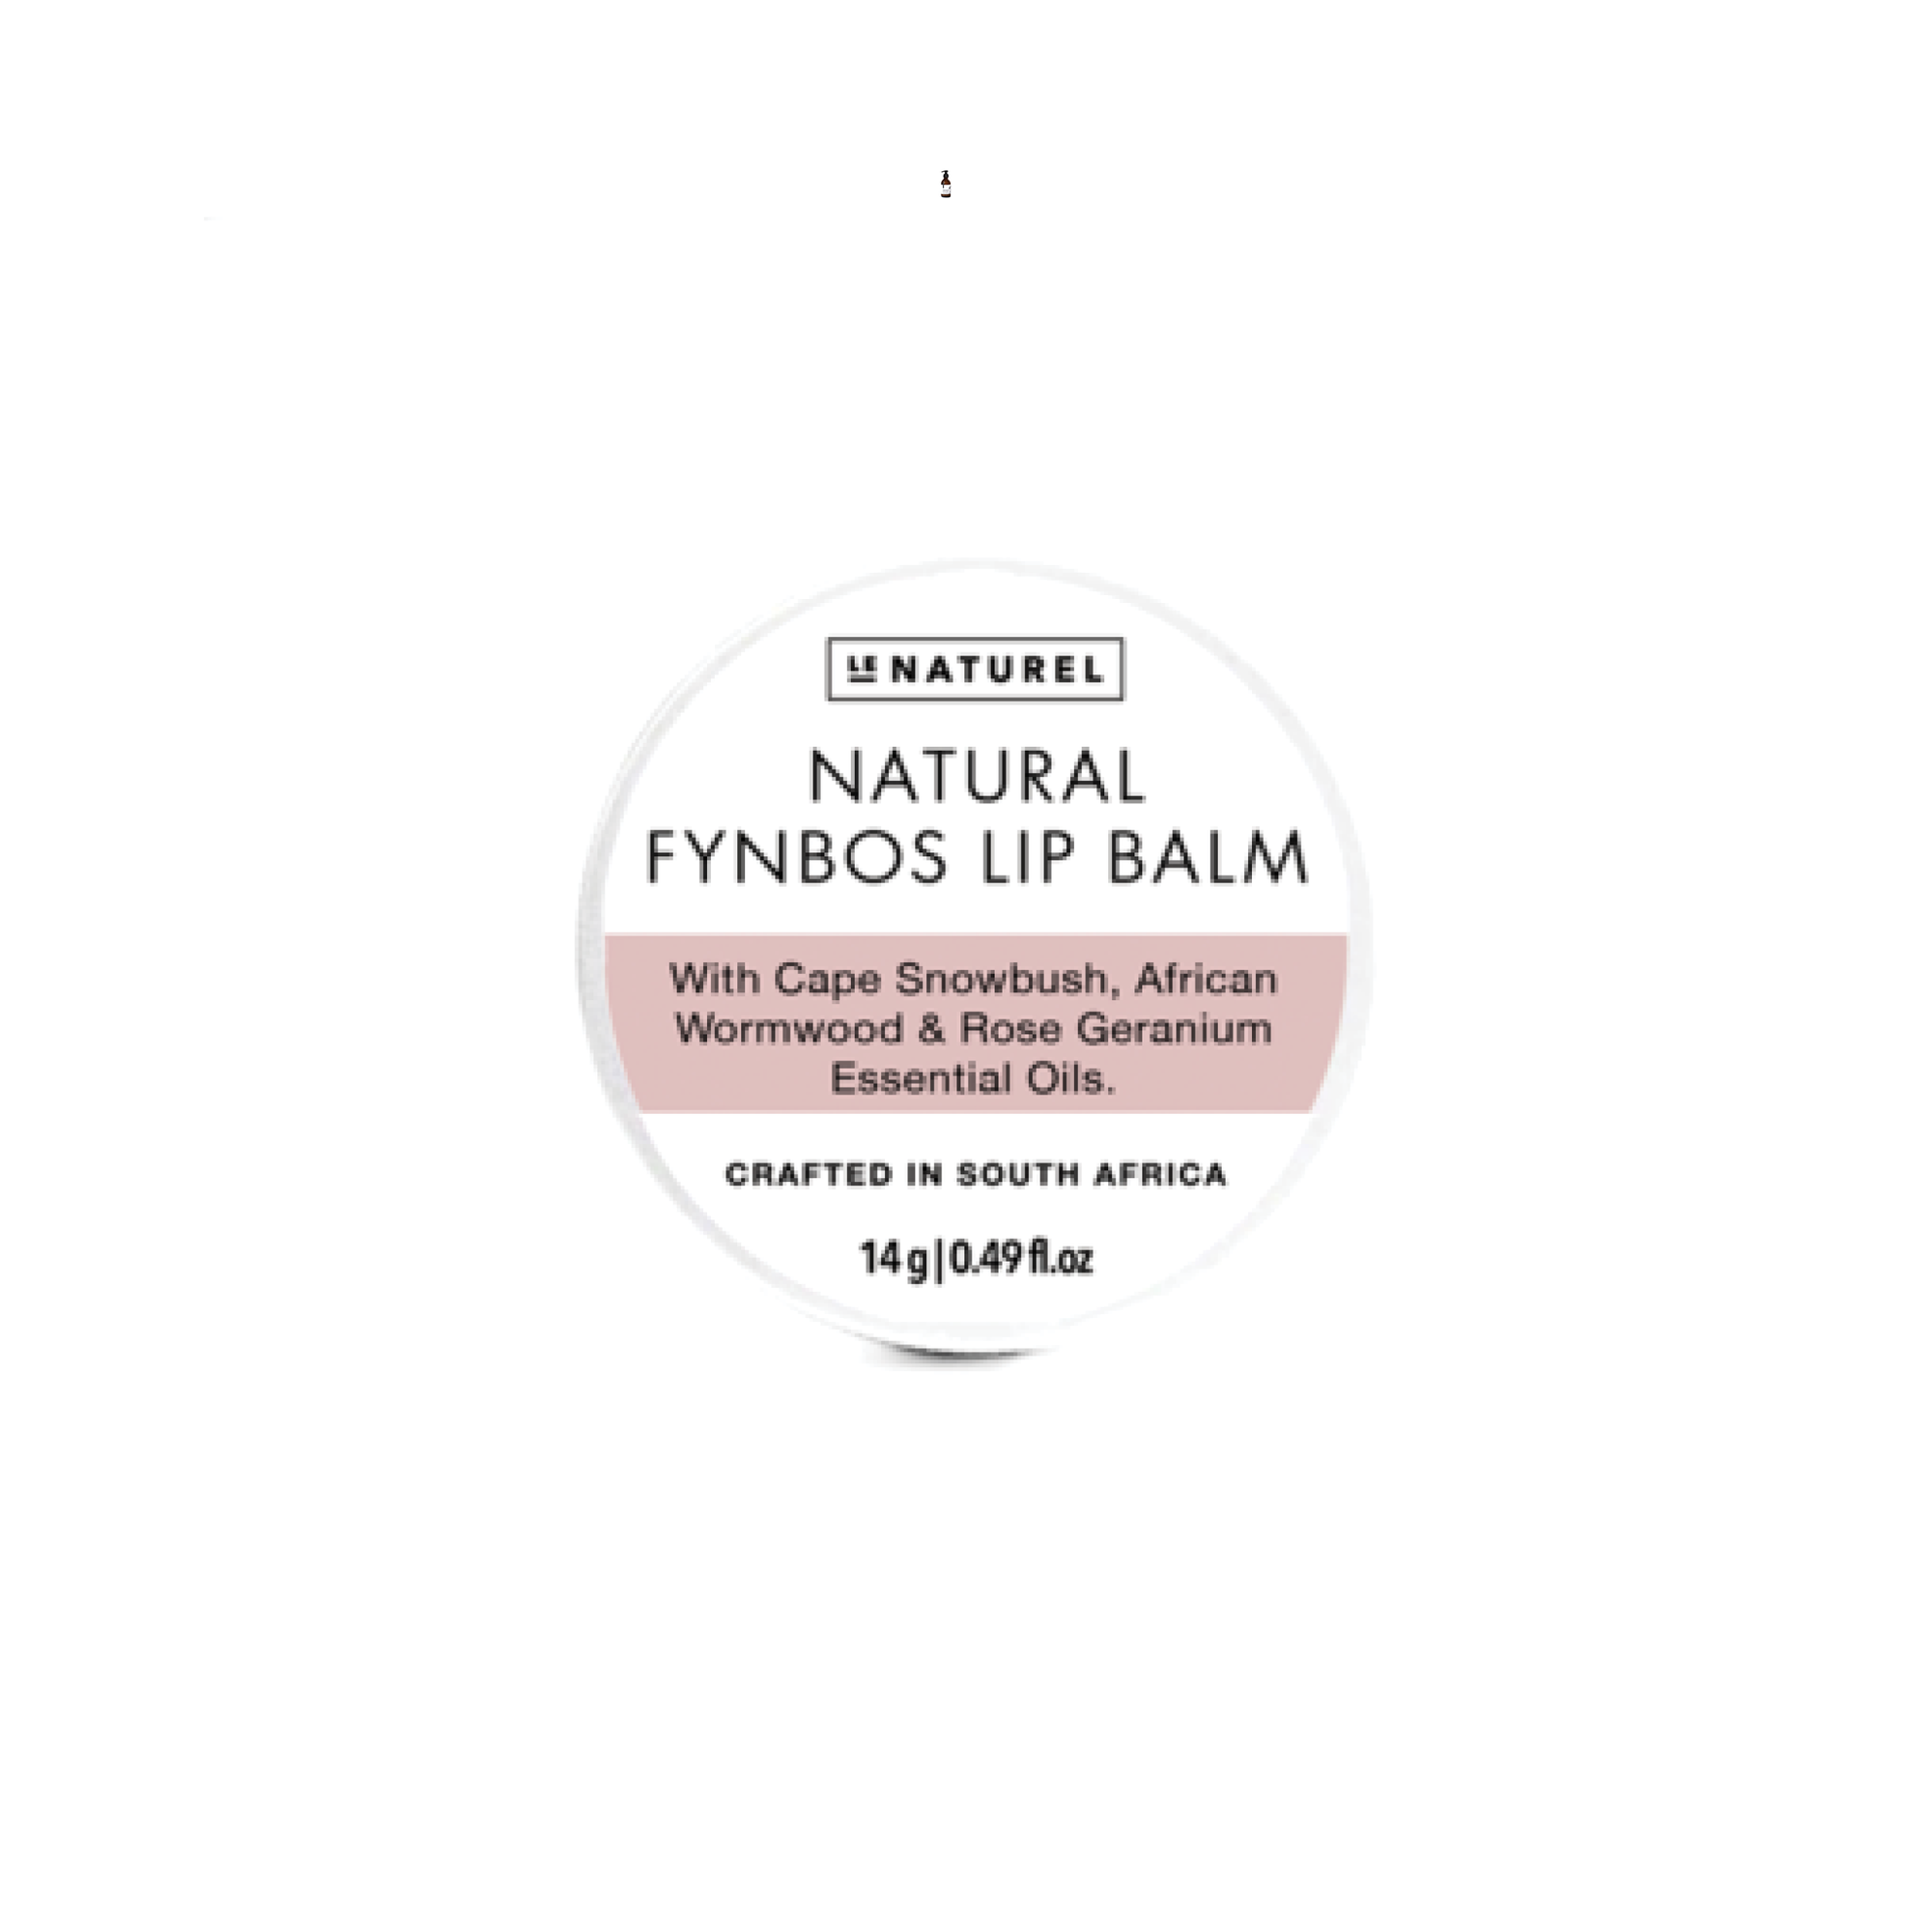 Natural Fynbos Lip Balm (14g) - Le Naturel